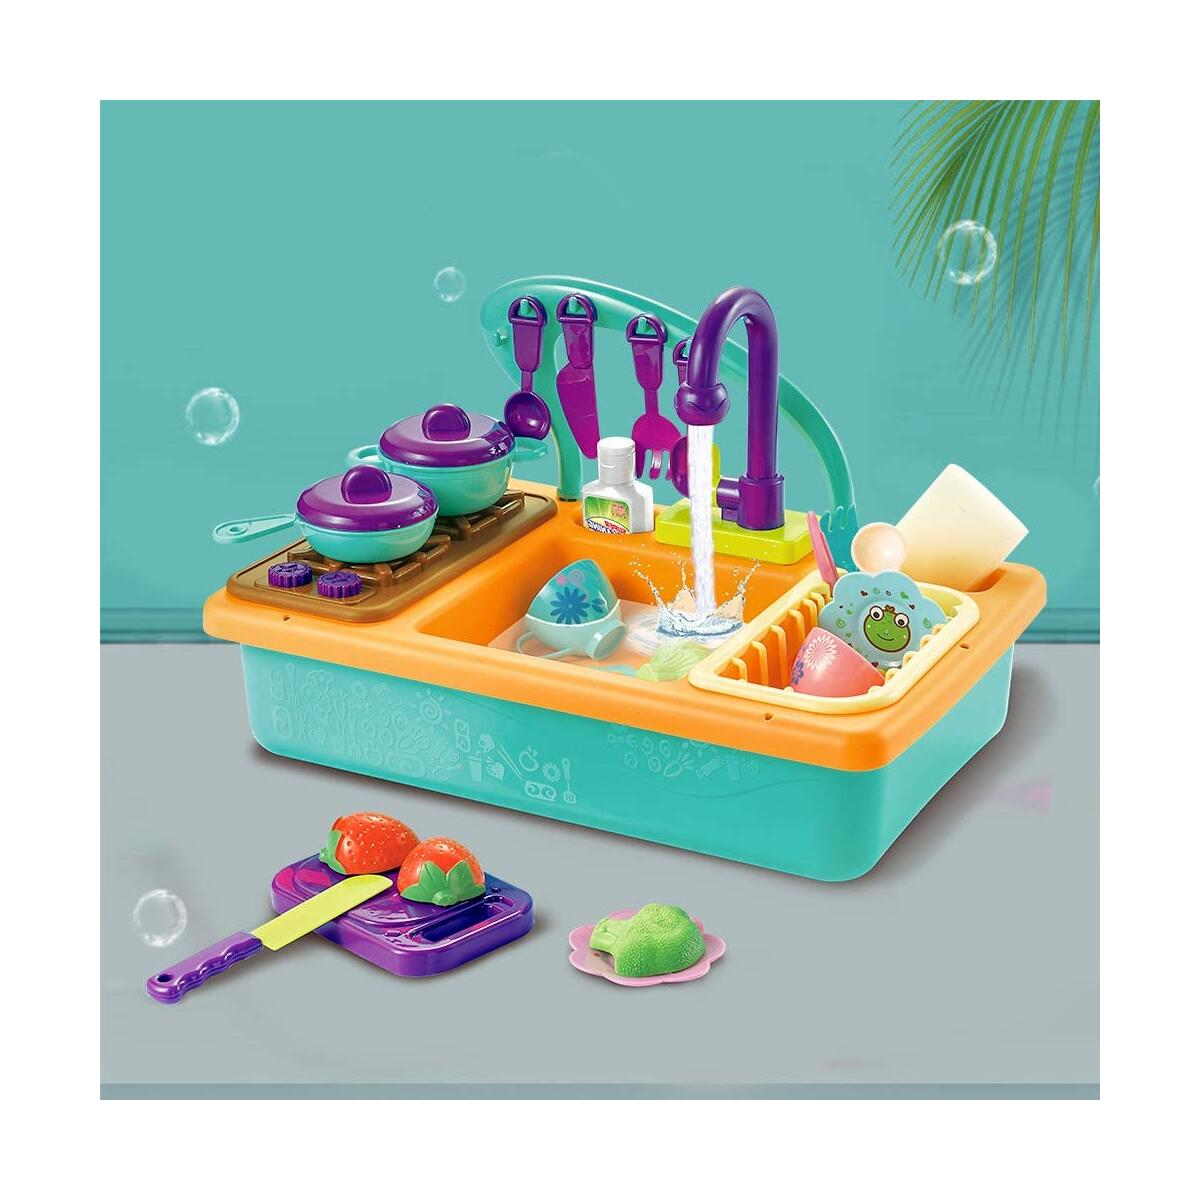 Happytime Toy Kitchen Set Play Kitchen Toy Utensils Play Dishes Accessories Plates Dishwasher Playing Toy with Running Water, Play House Pretend Role Play Toys for Boys Girls